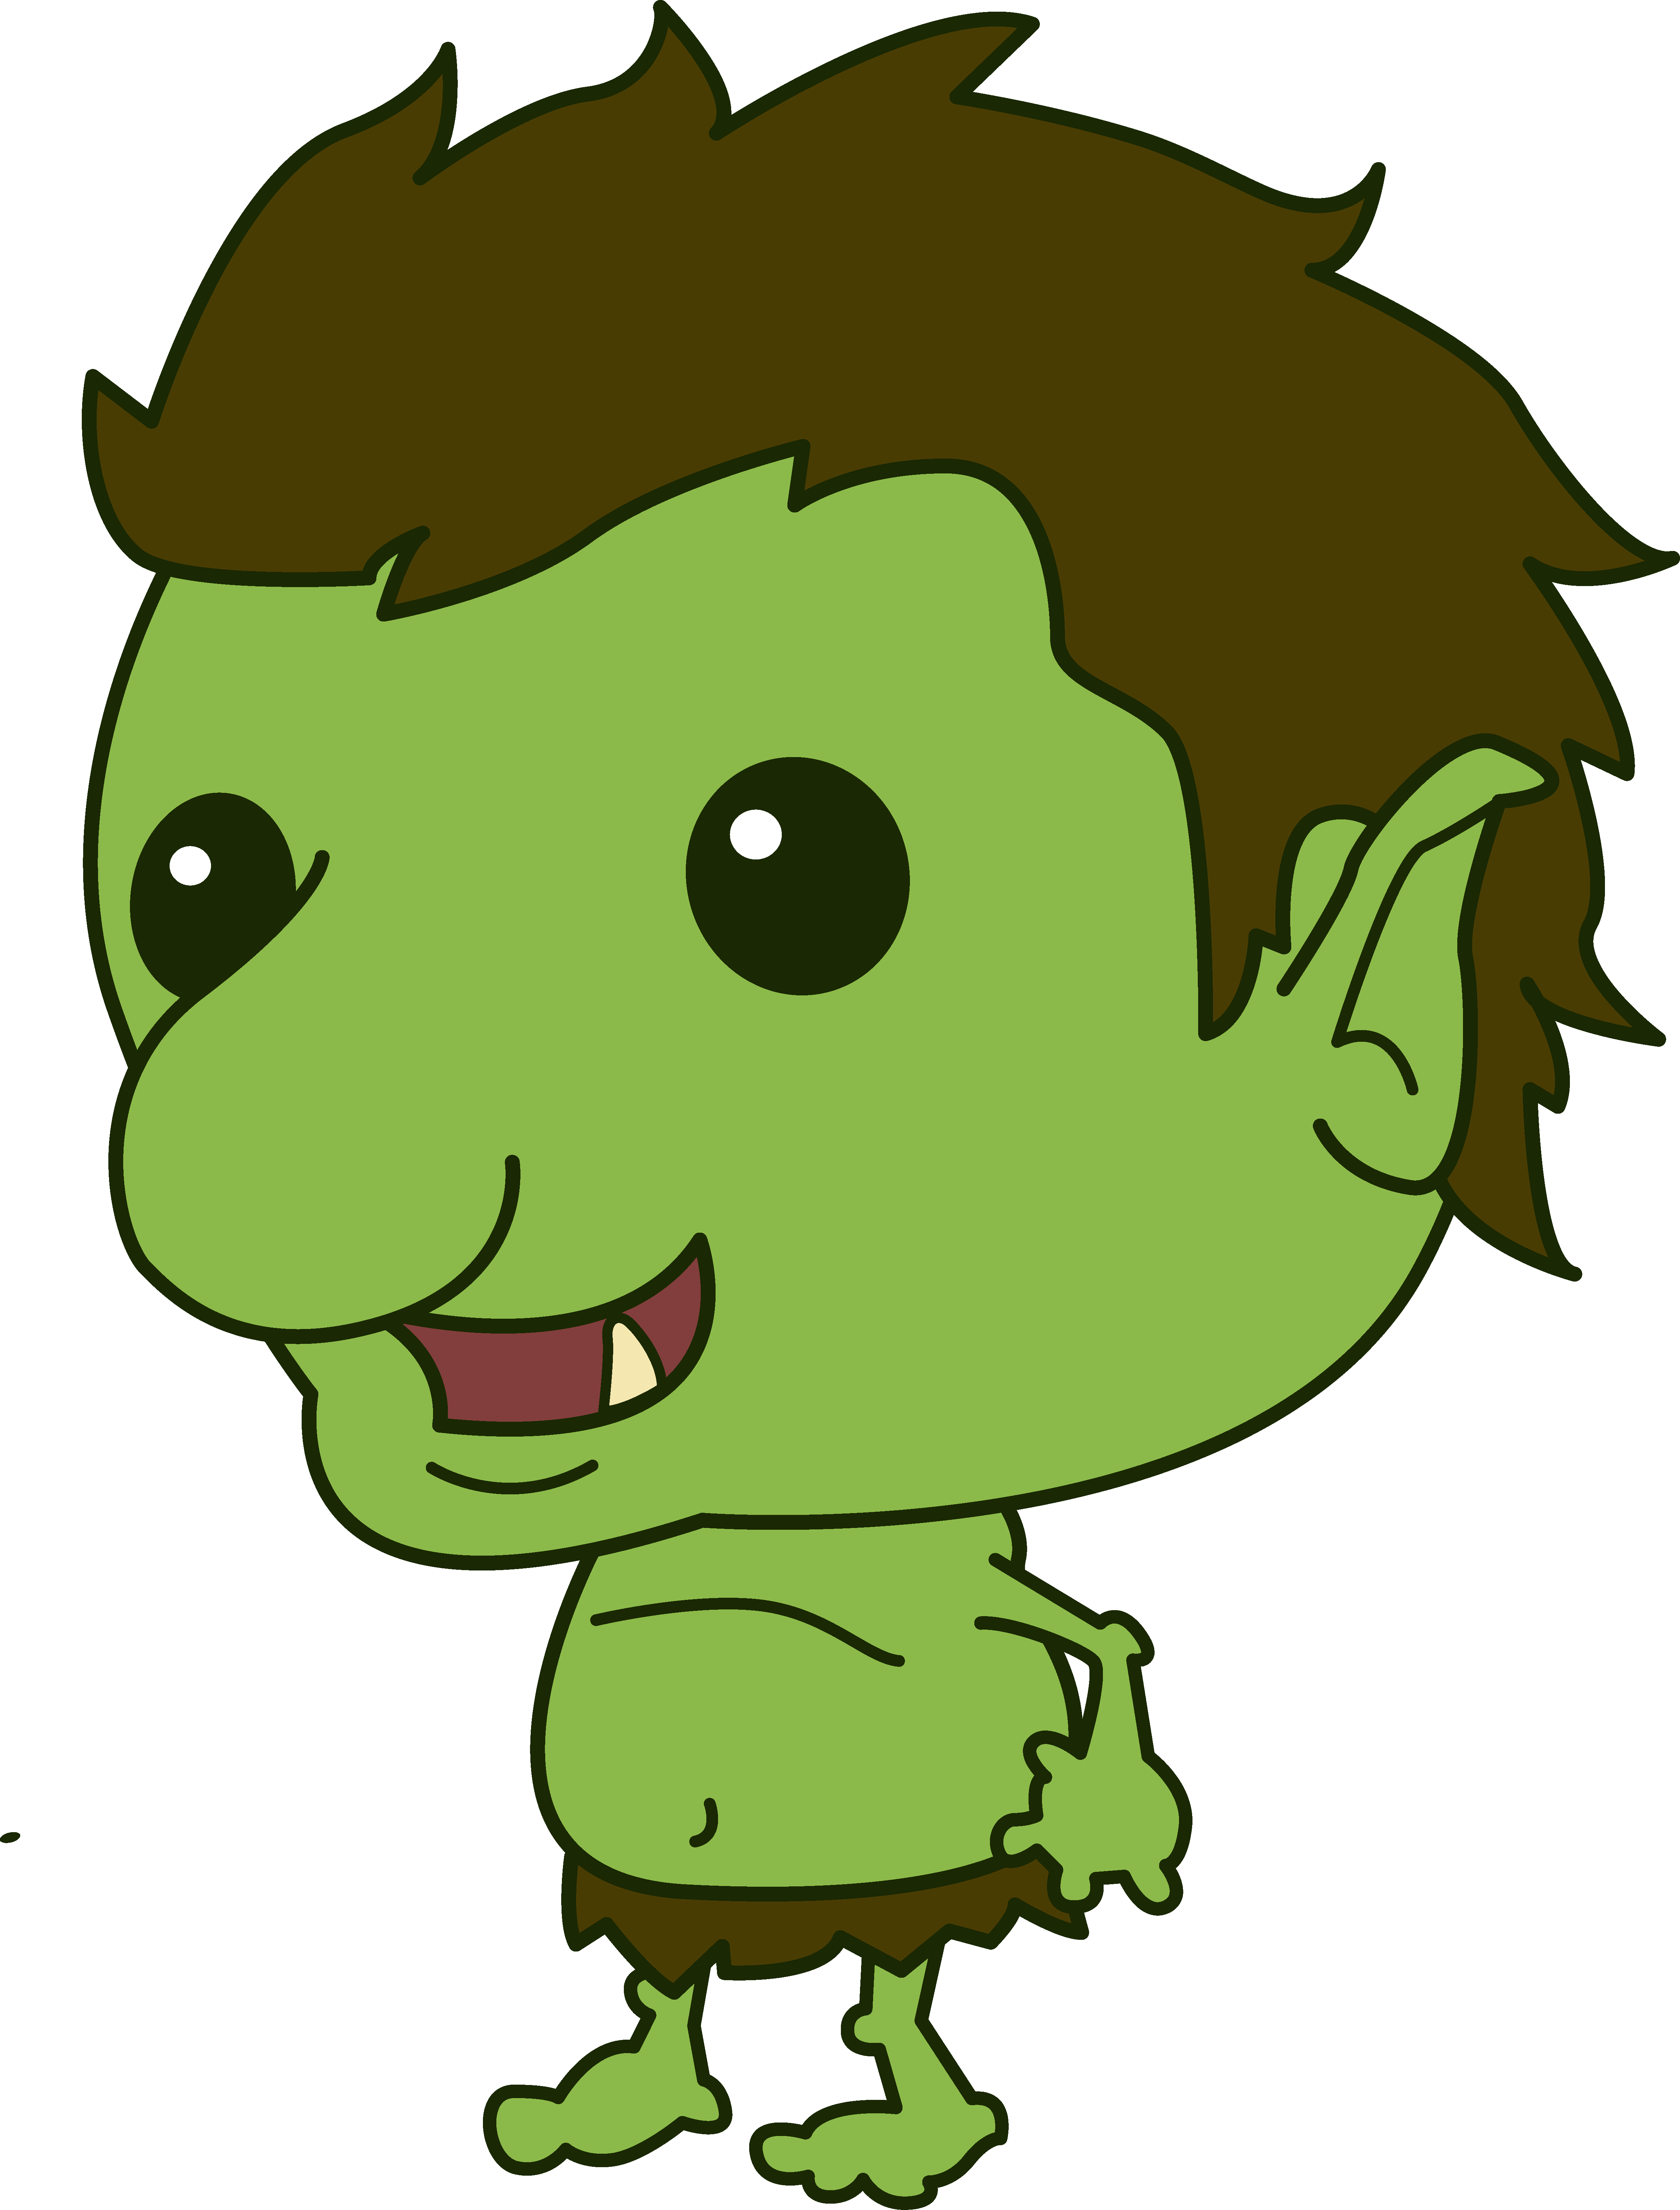 Goblins clipart clipart freeuse download Free Little Goblin Cliparts, Download Free Clip Art, Free Clip Art ... clipart freeuse download